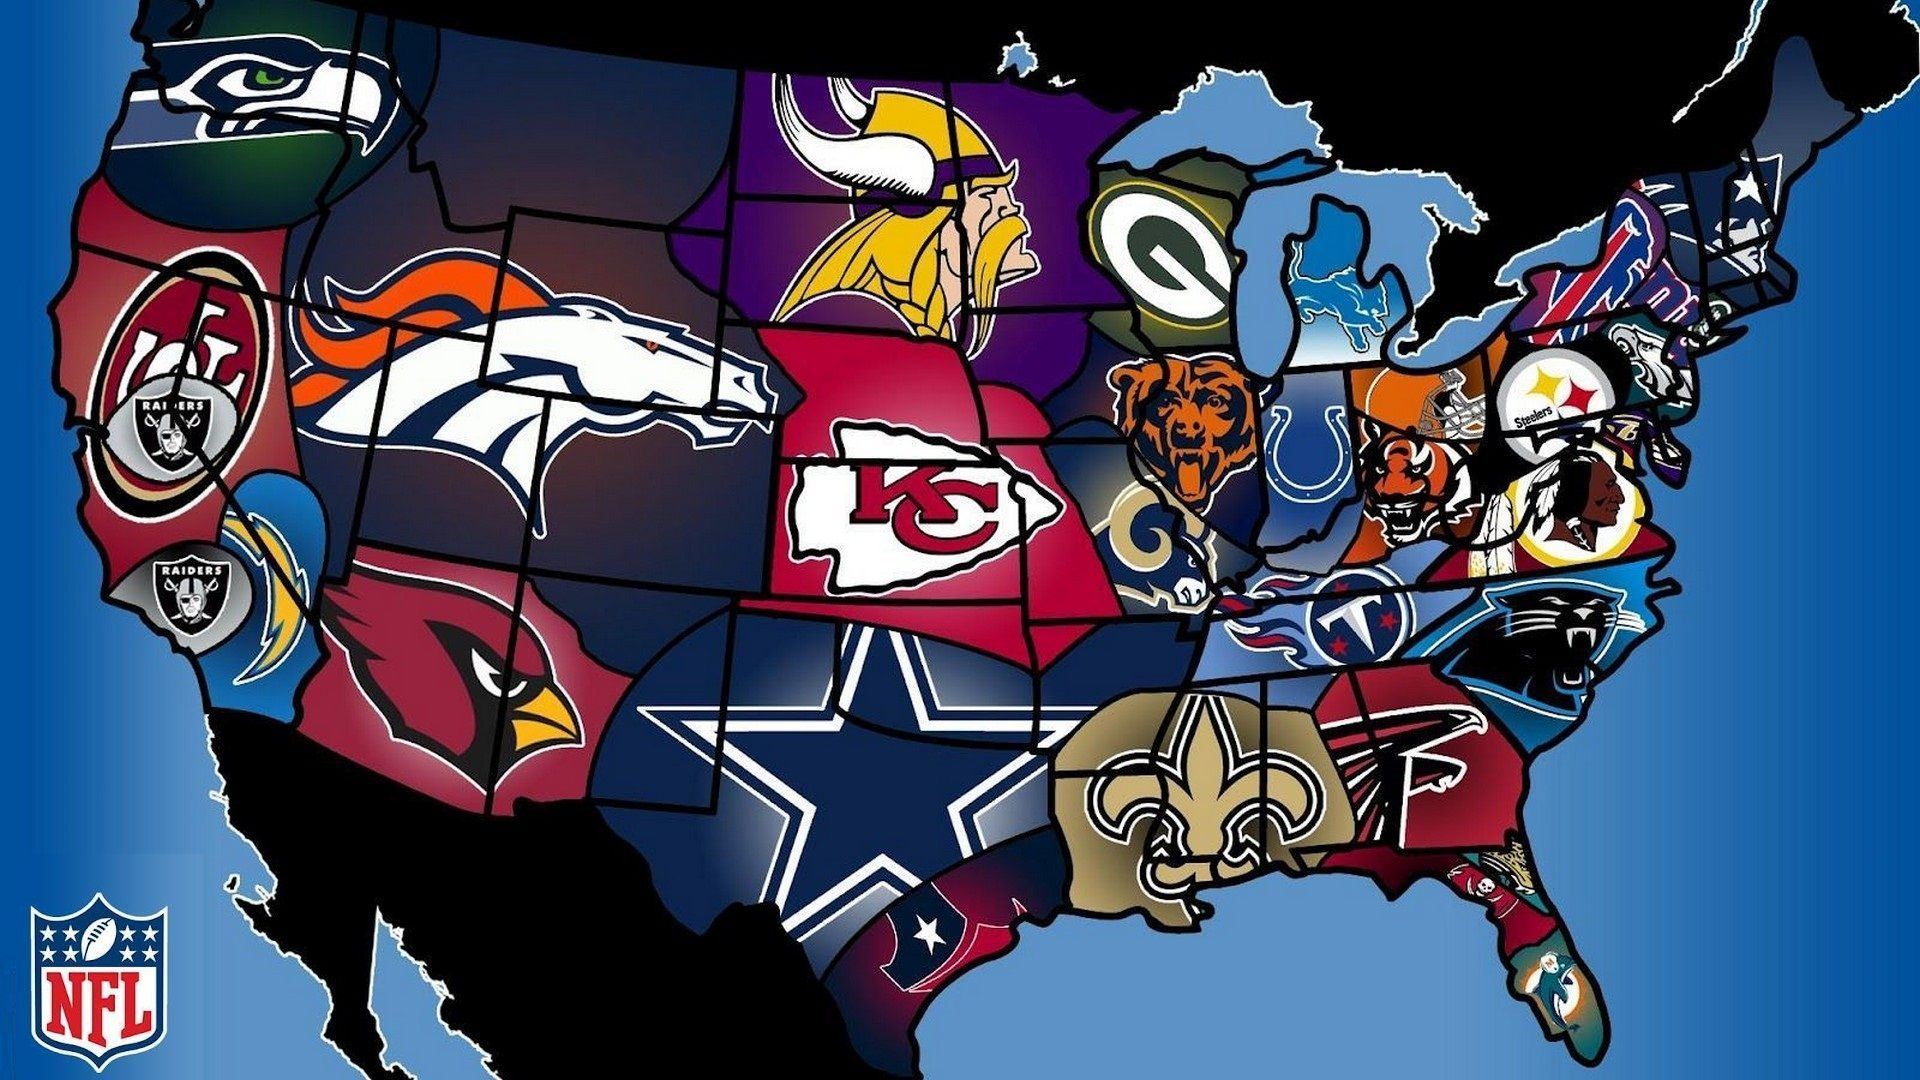 Cool Nfl For Pc Wallpaper 2020 Nfl Football Wallpapers Nfl Fans Nfl Season Nfl Teams